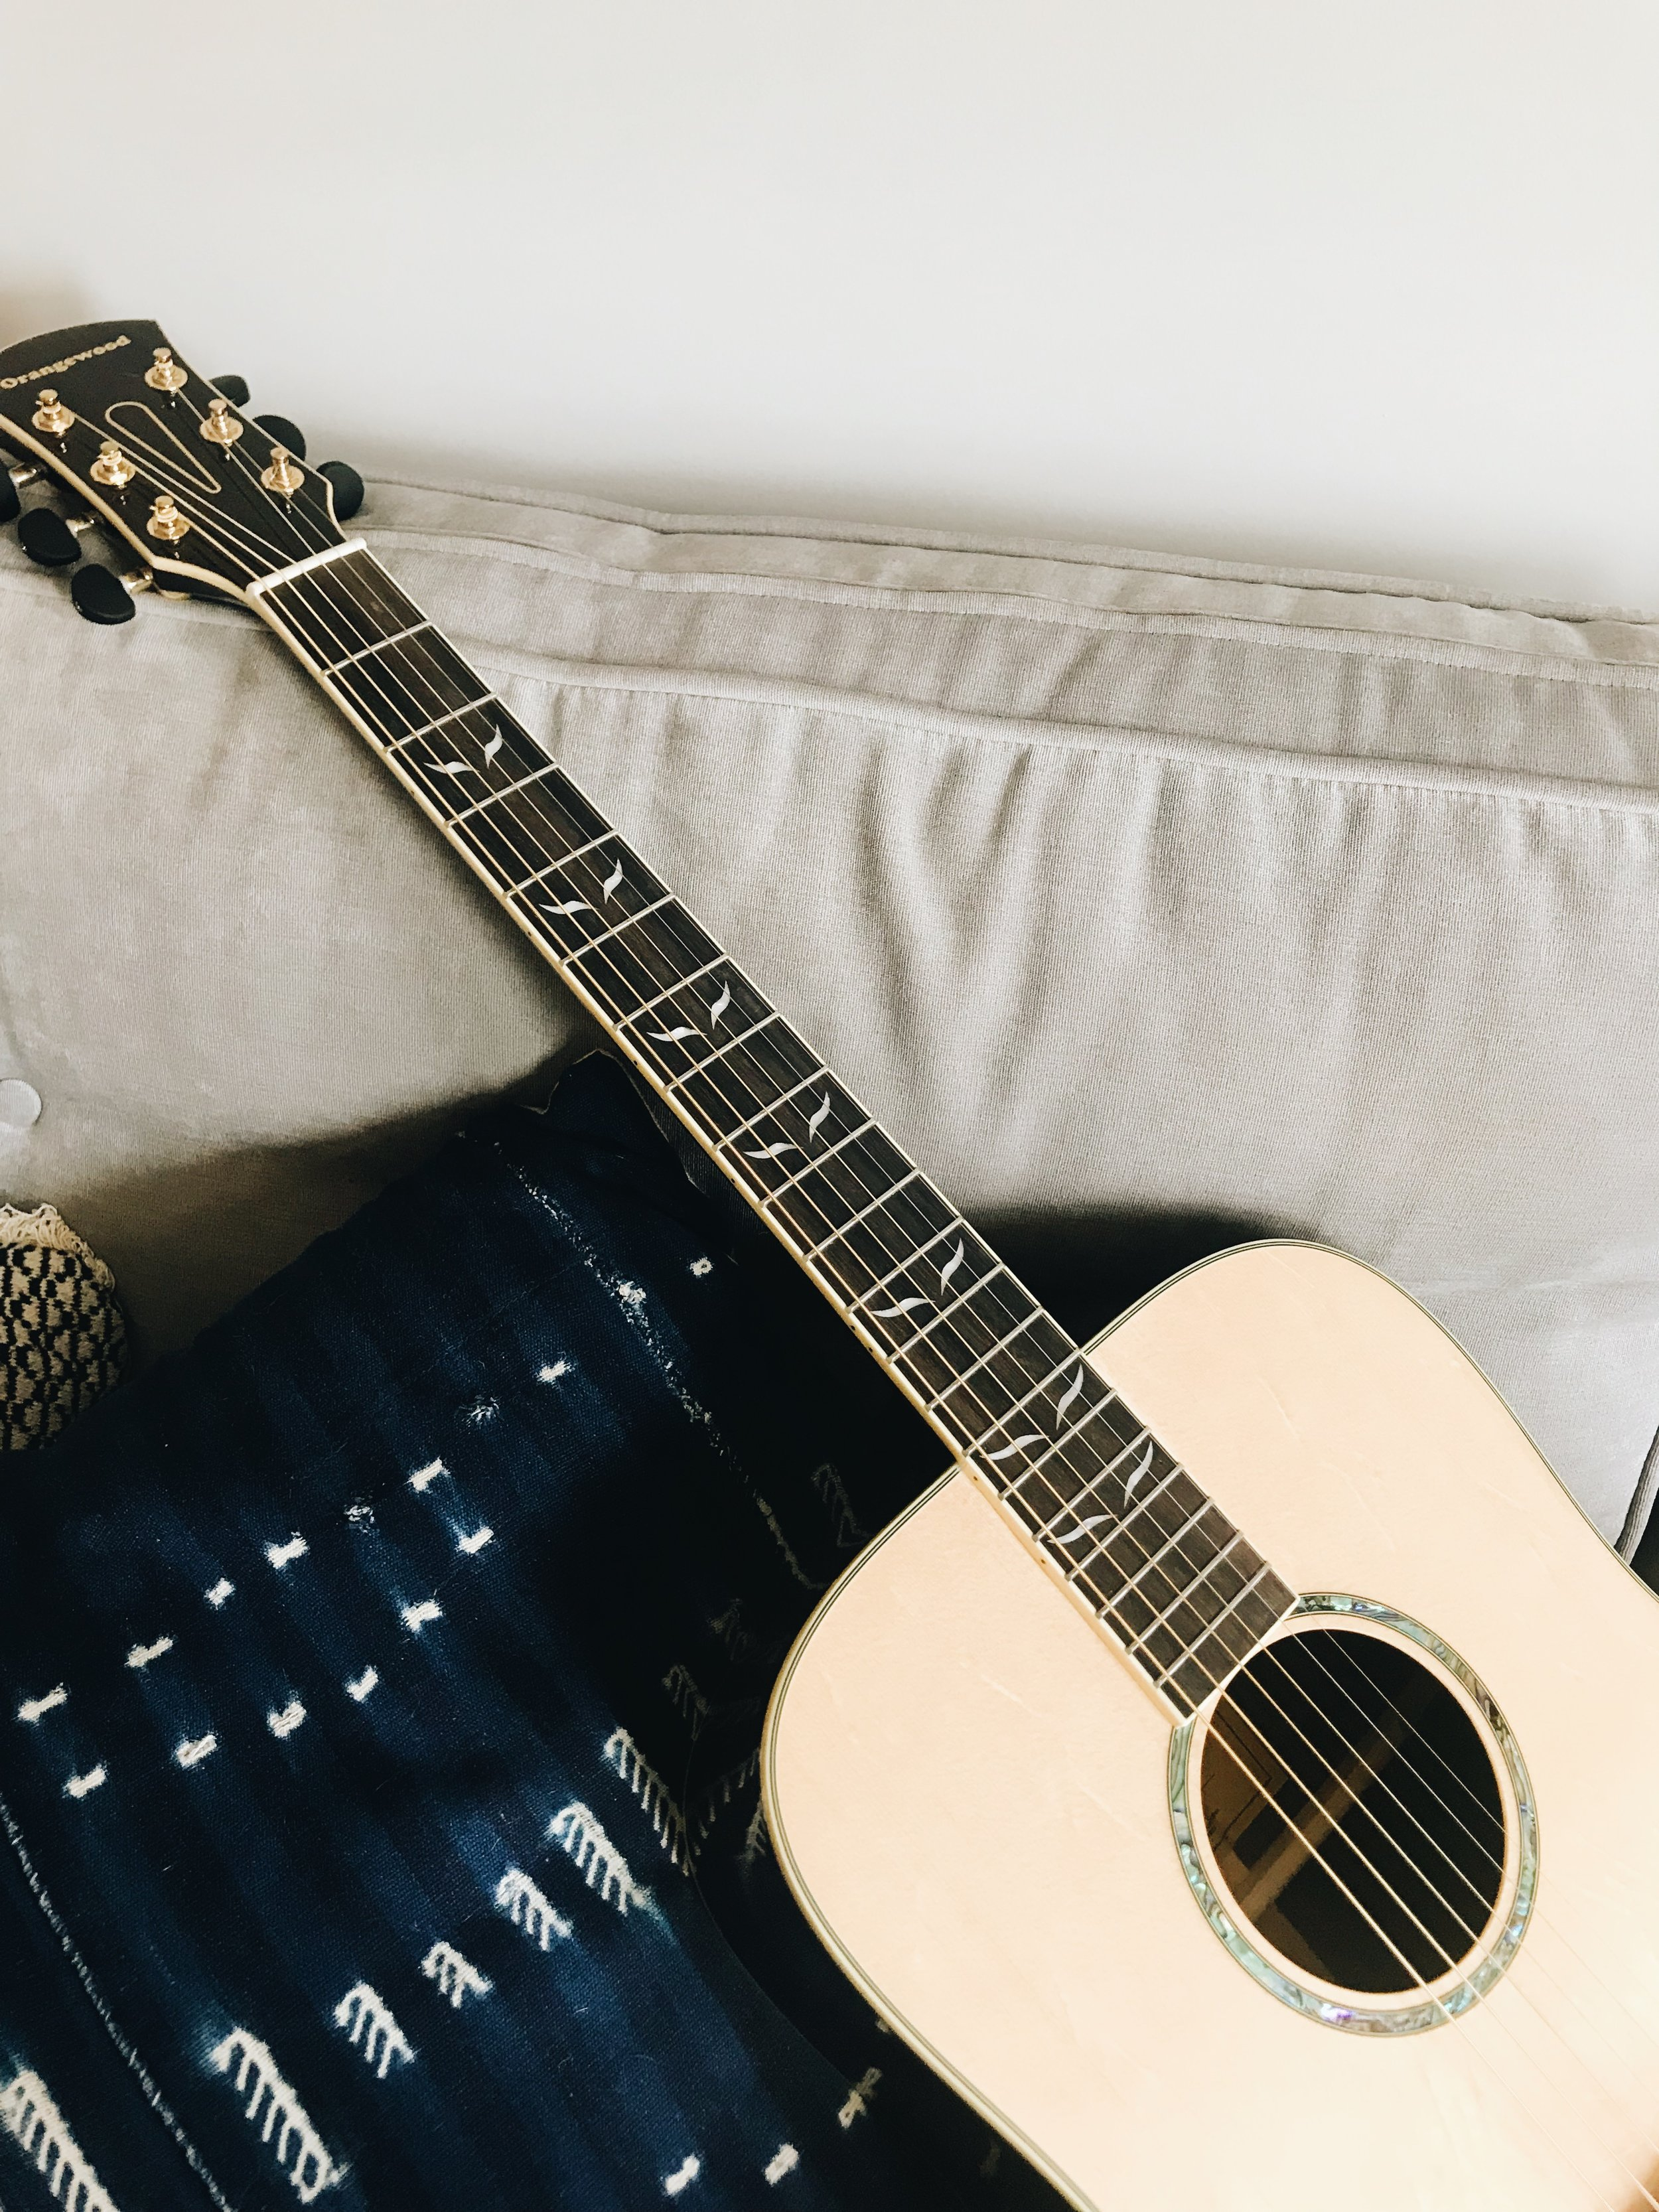 Get the acoustic booster course - Feel confident picking up your acoustic guitar with my 30 lesson course and eBook! Learn fun new chords, songs, and new techniques, that are straightforward and easy to follow!